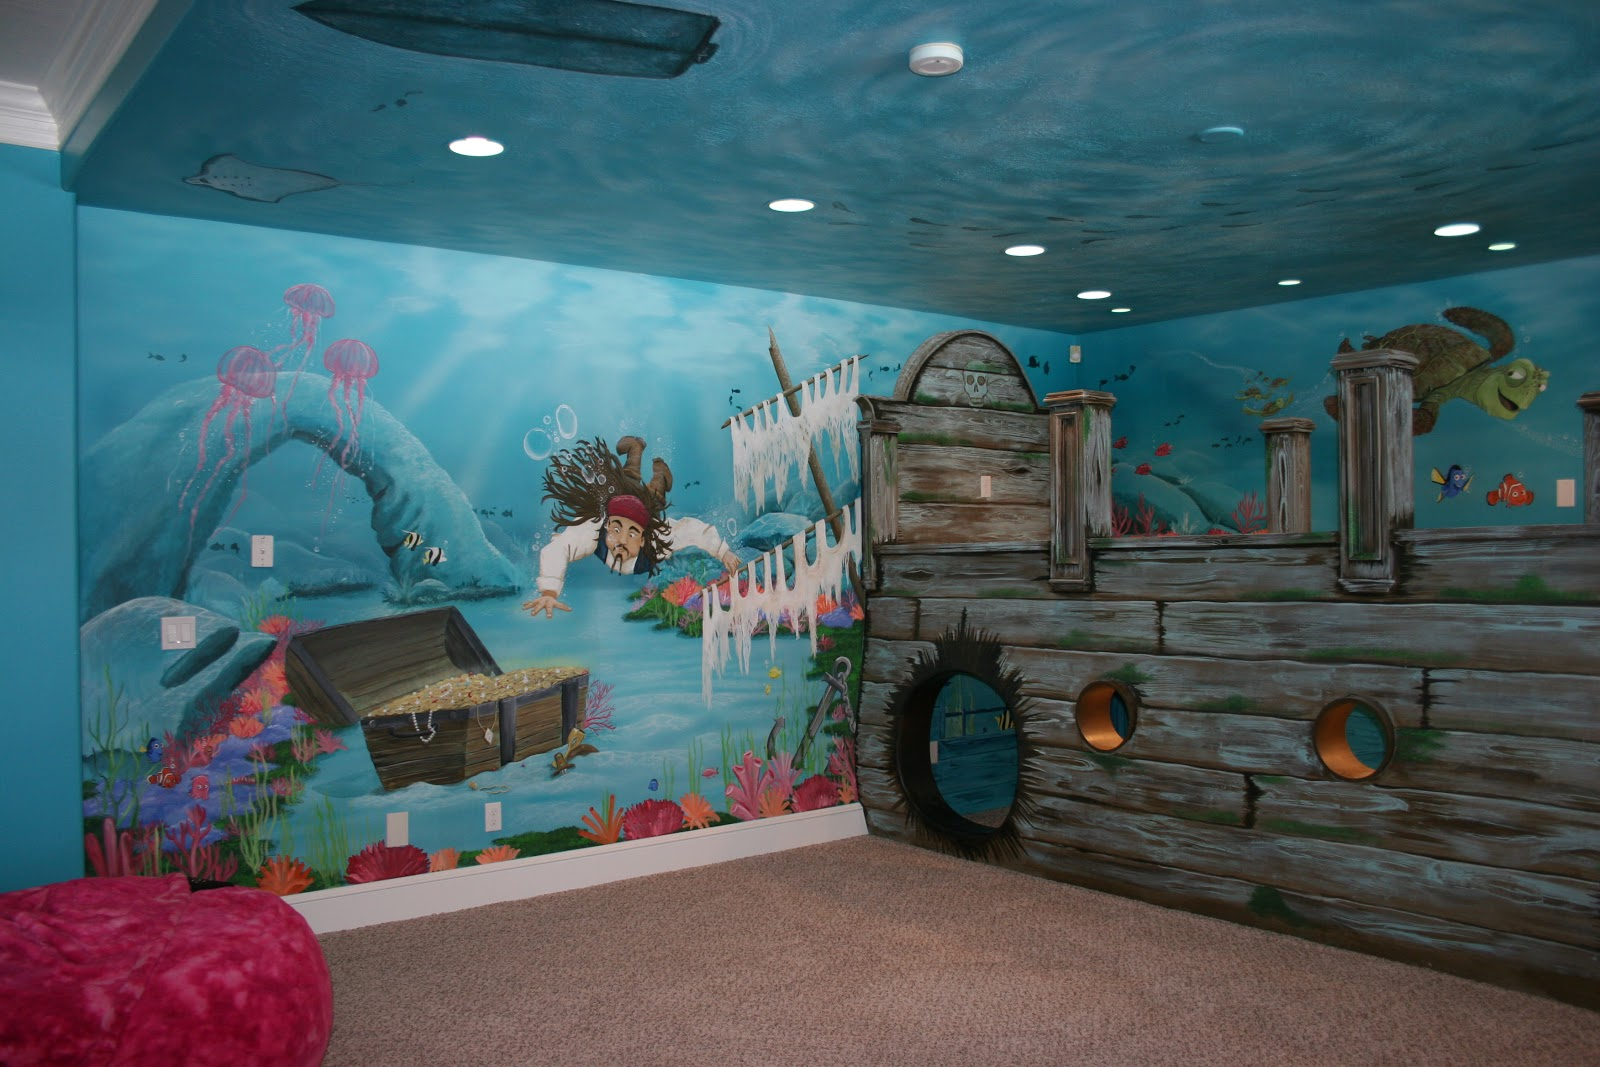 What child wouldn t love to play in this room for hours and hours